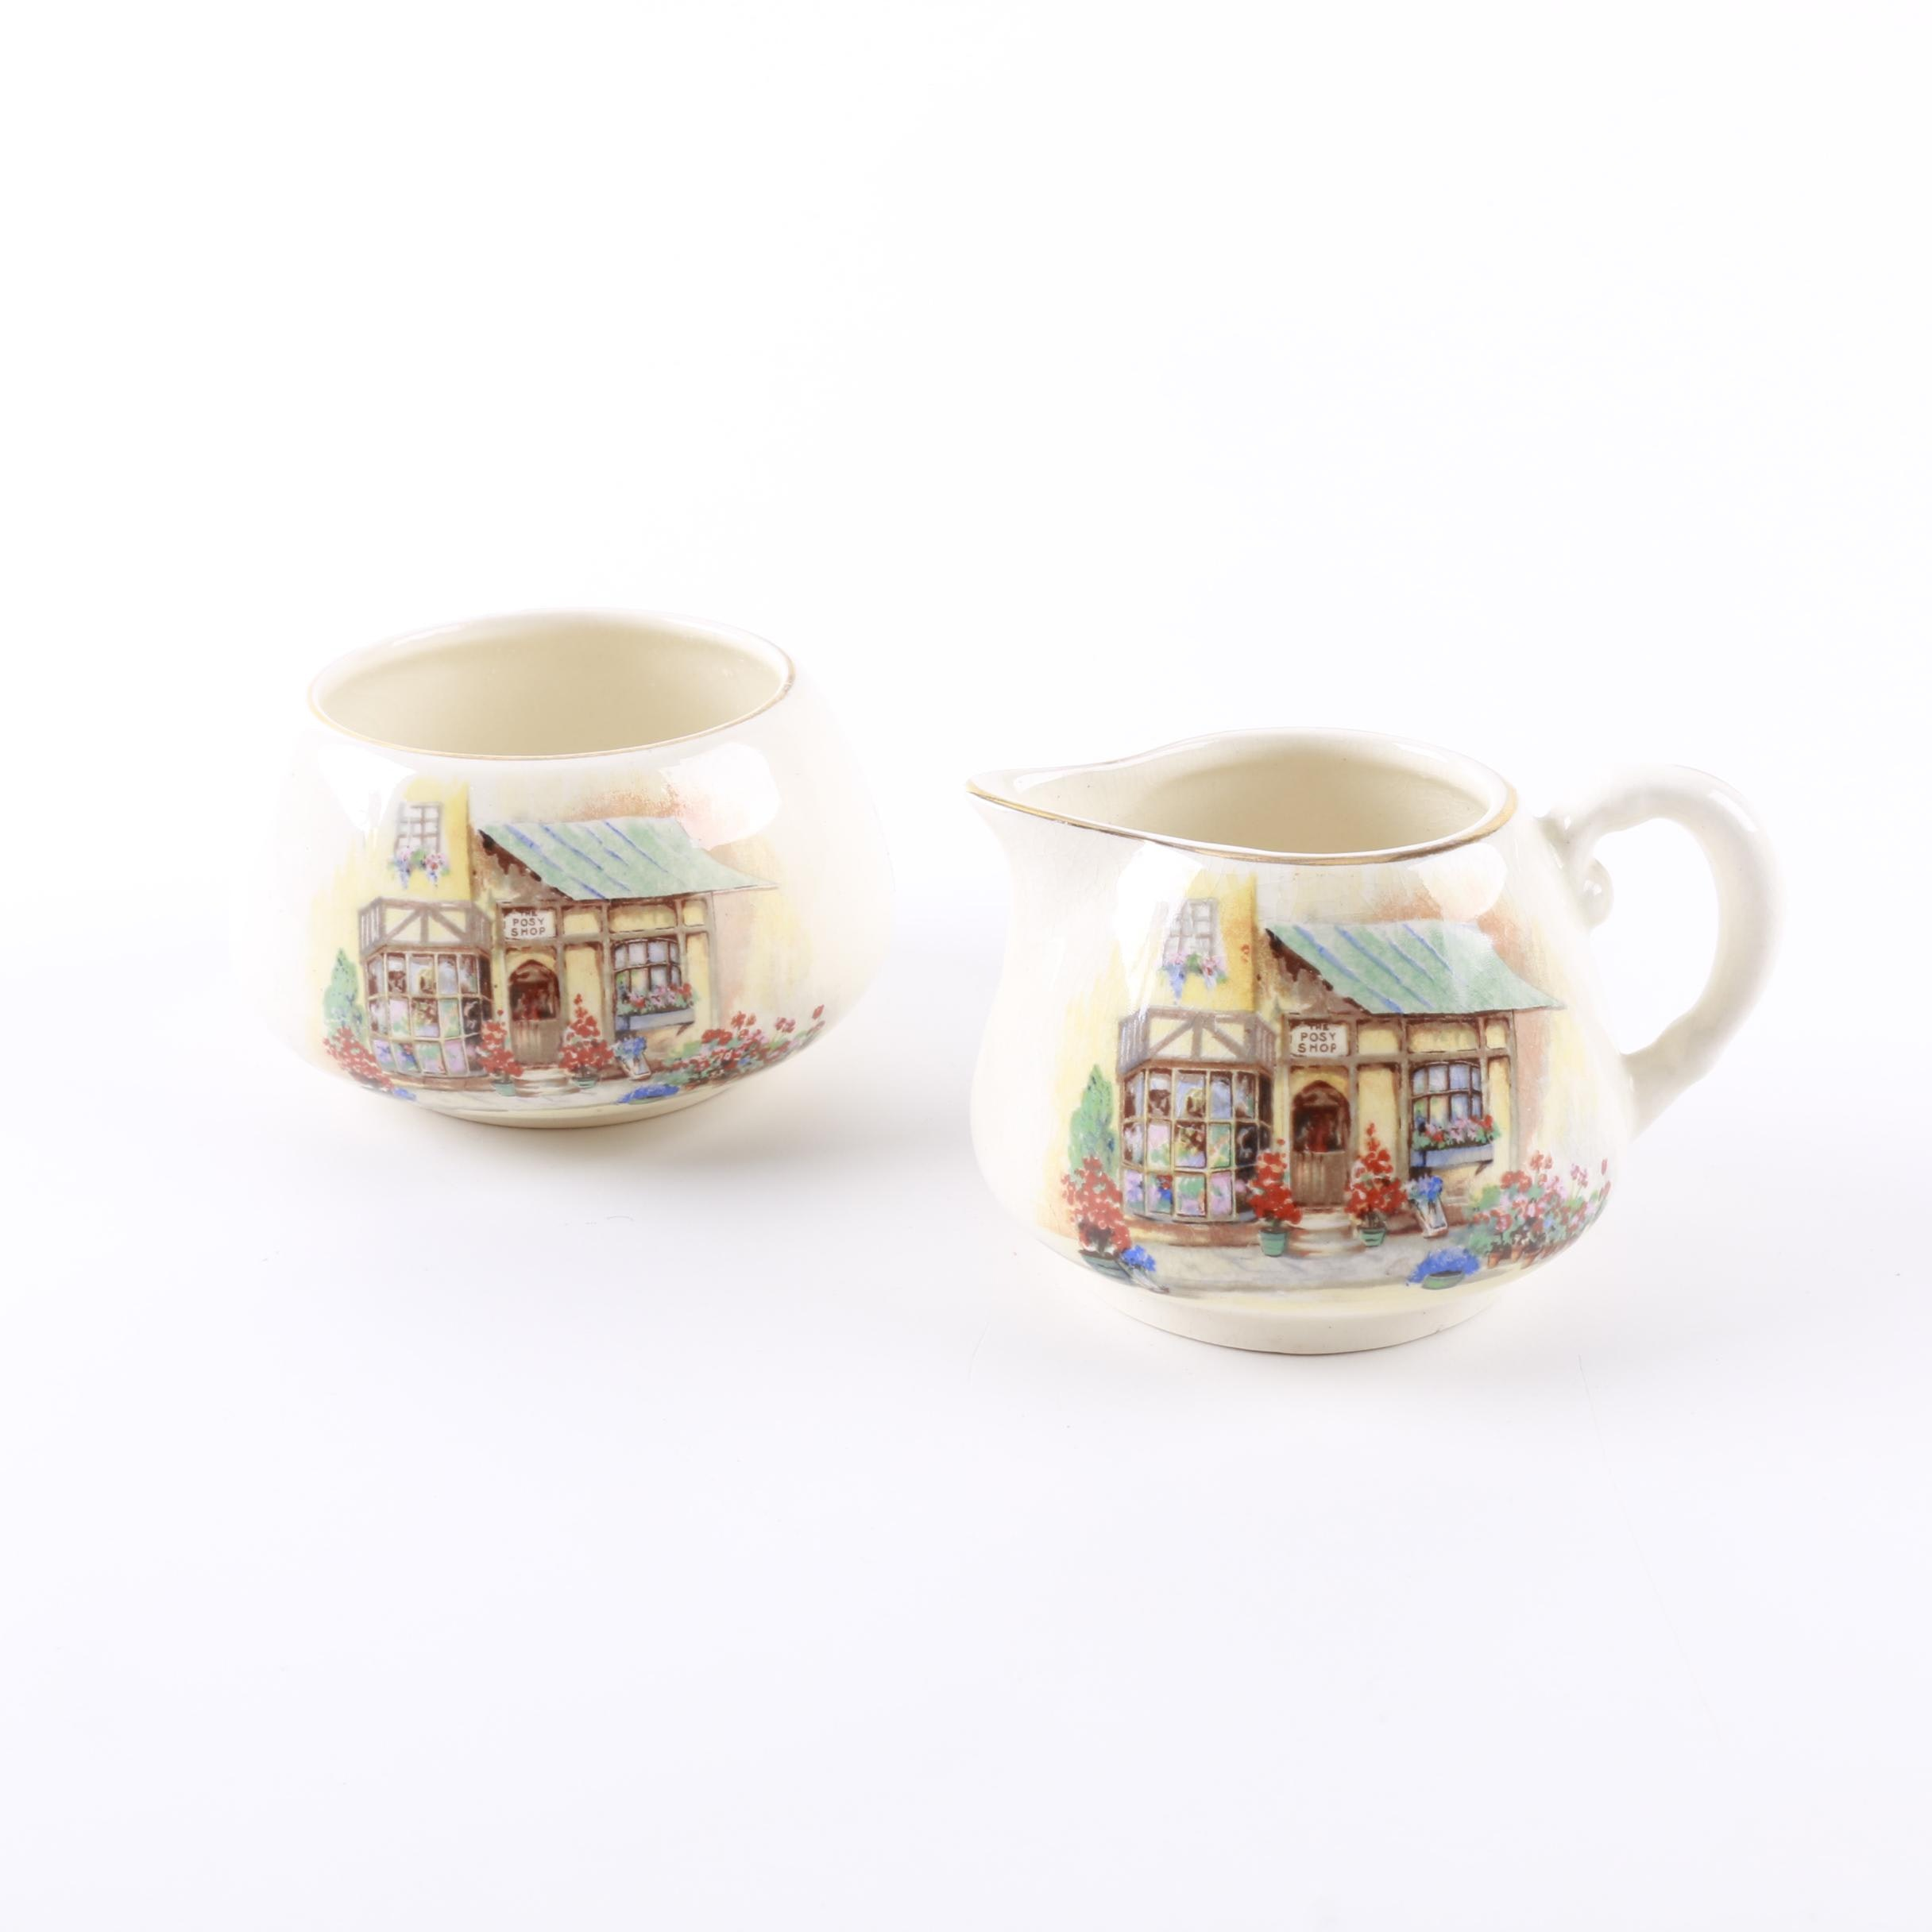 Sandland Ware Stoneware Stacking Creamer and Sugar Bowl